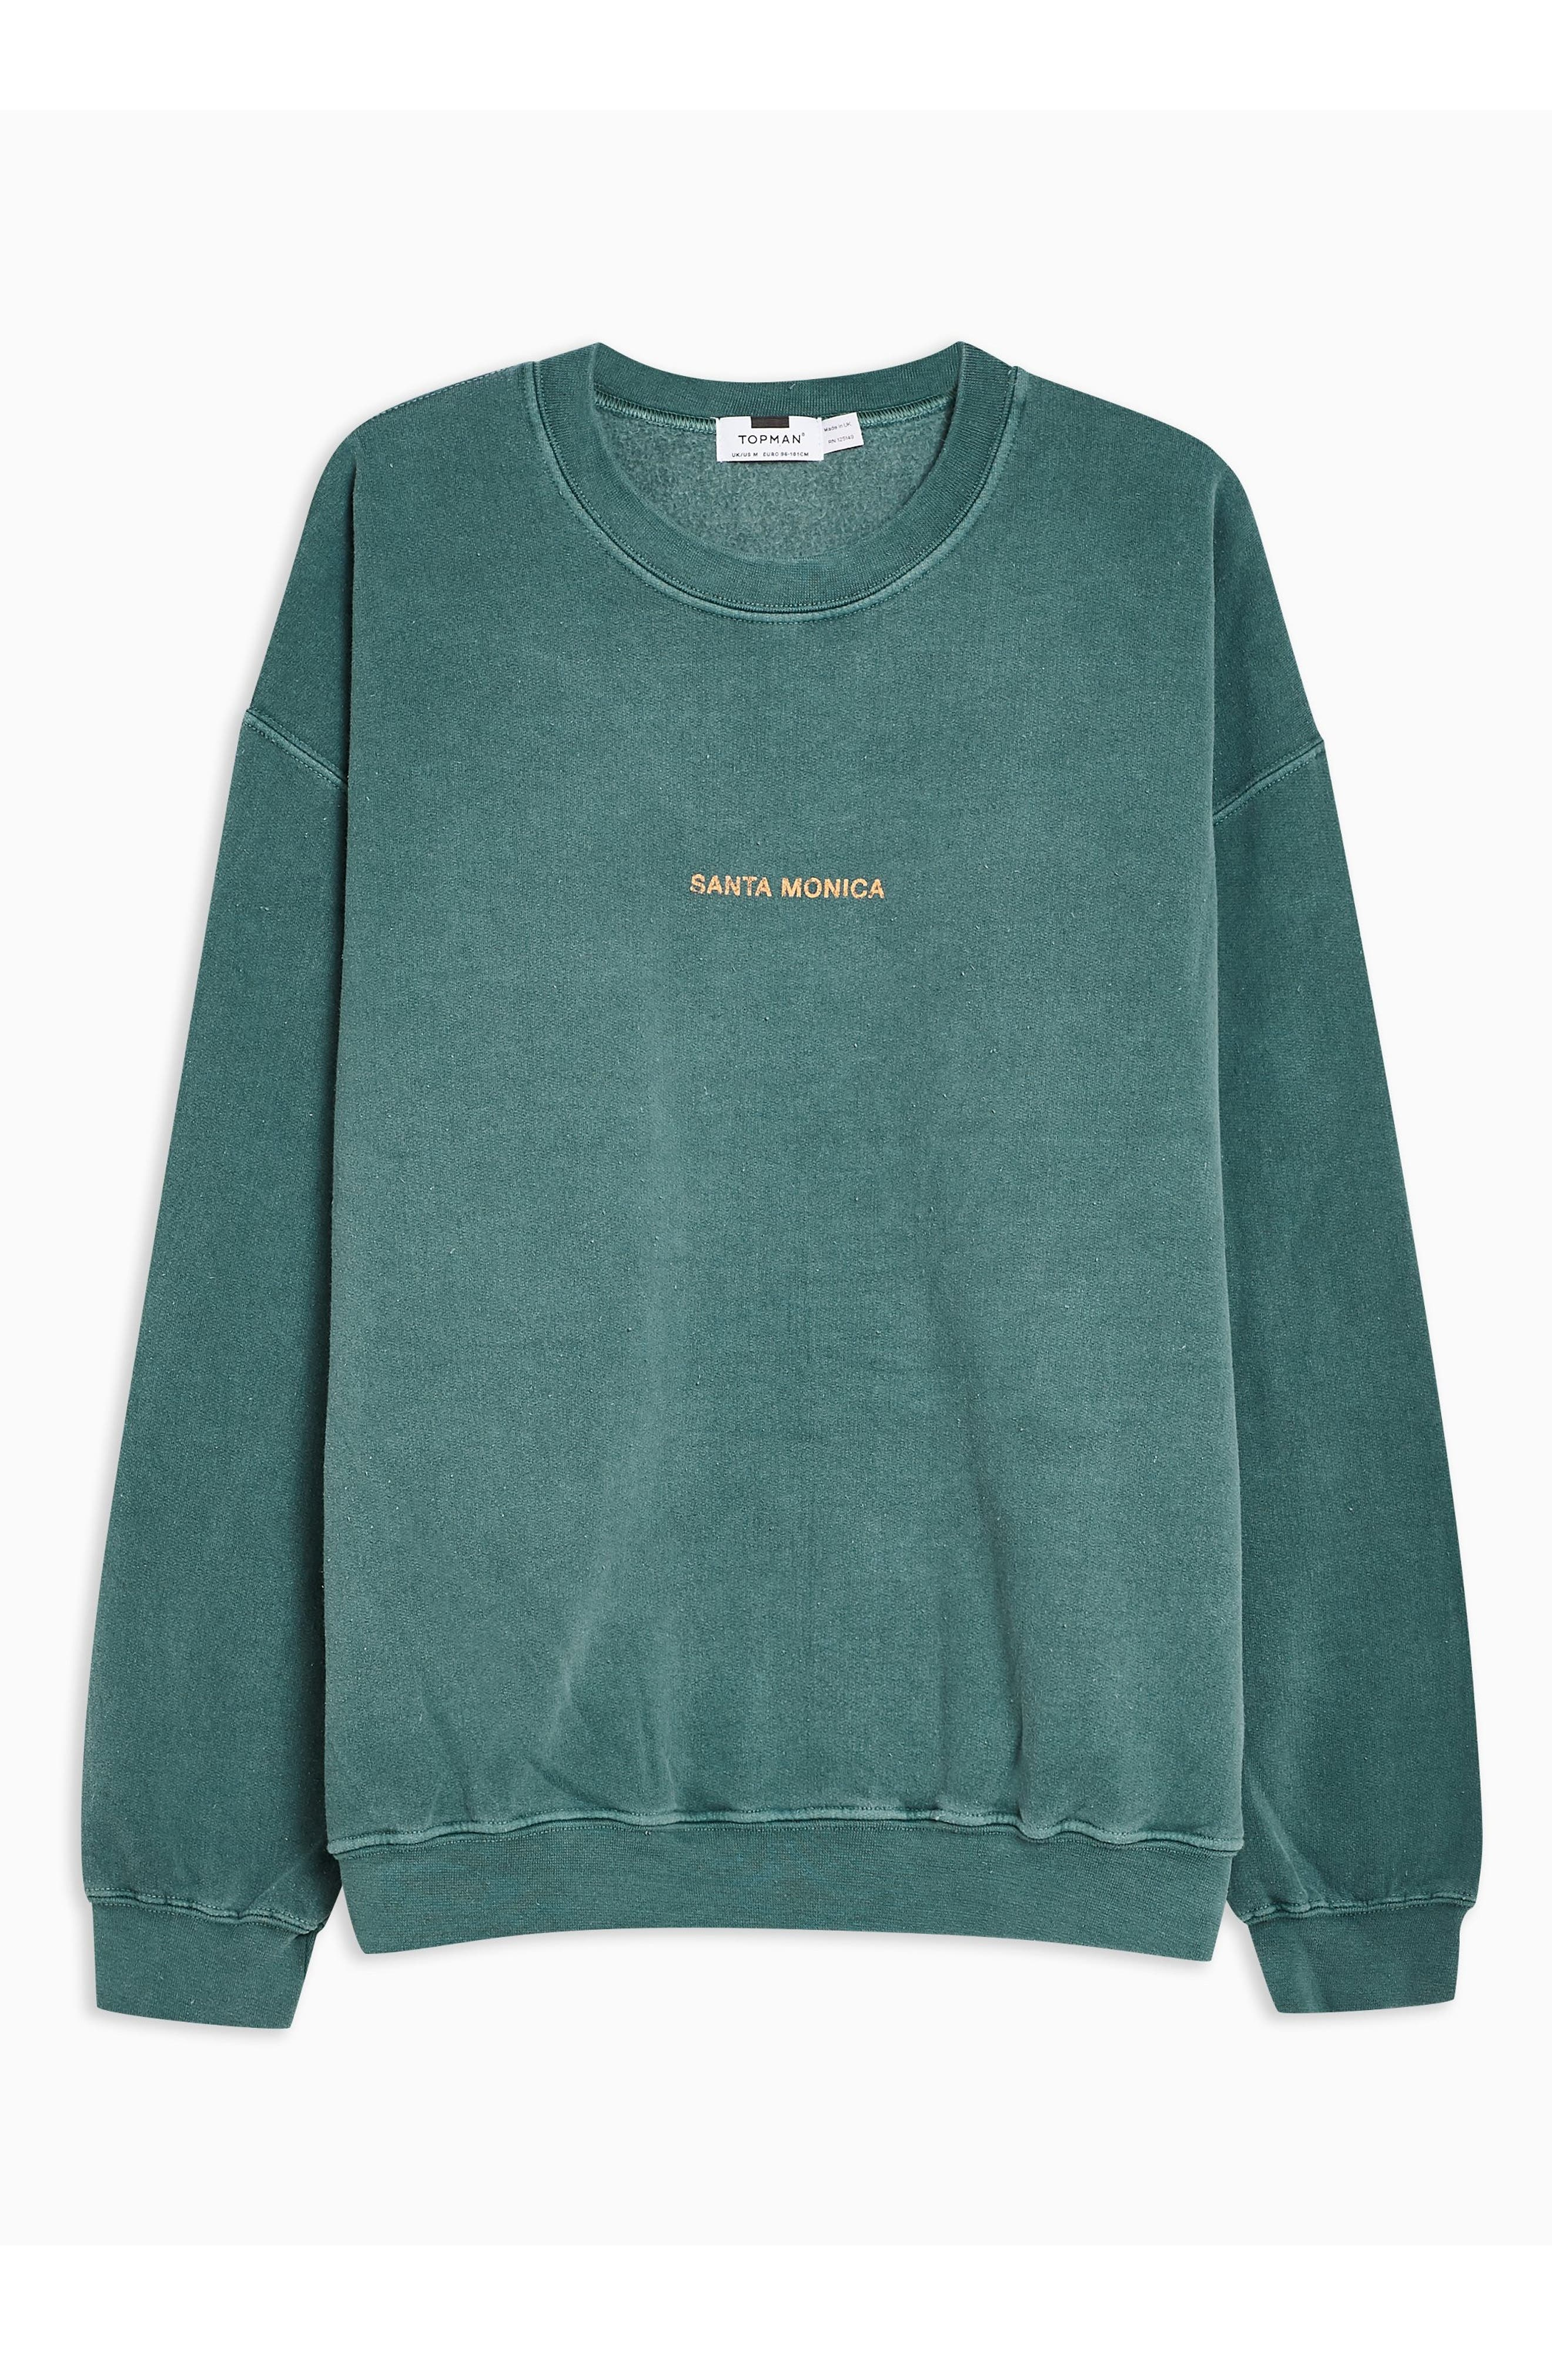 TOPMAN, Santa Monica Oversize Sweatshirt, Alternate thumbnail 3, color, GREEN